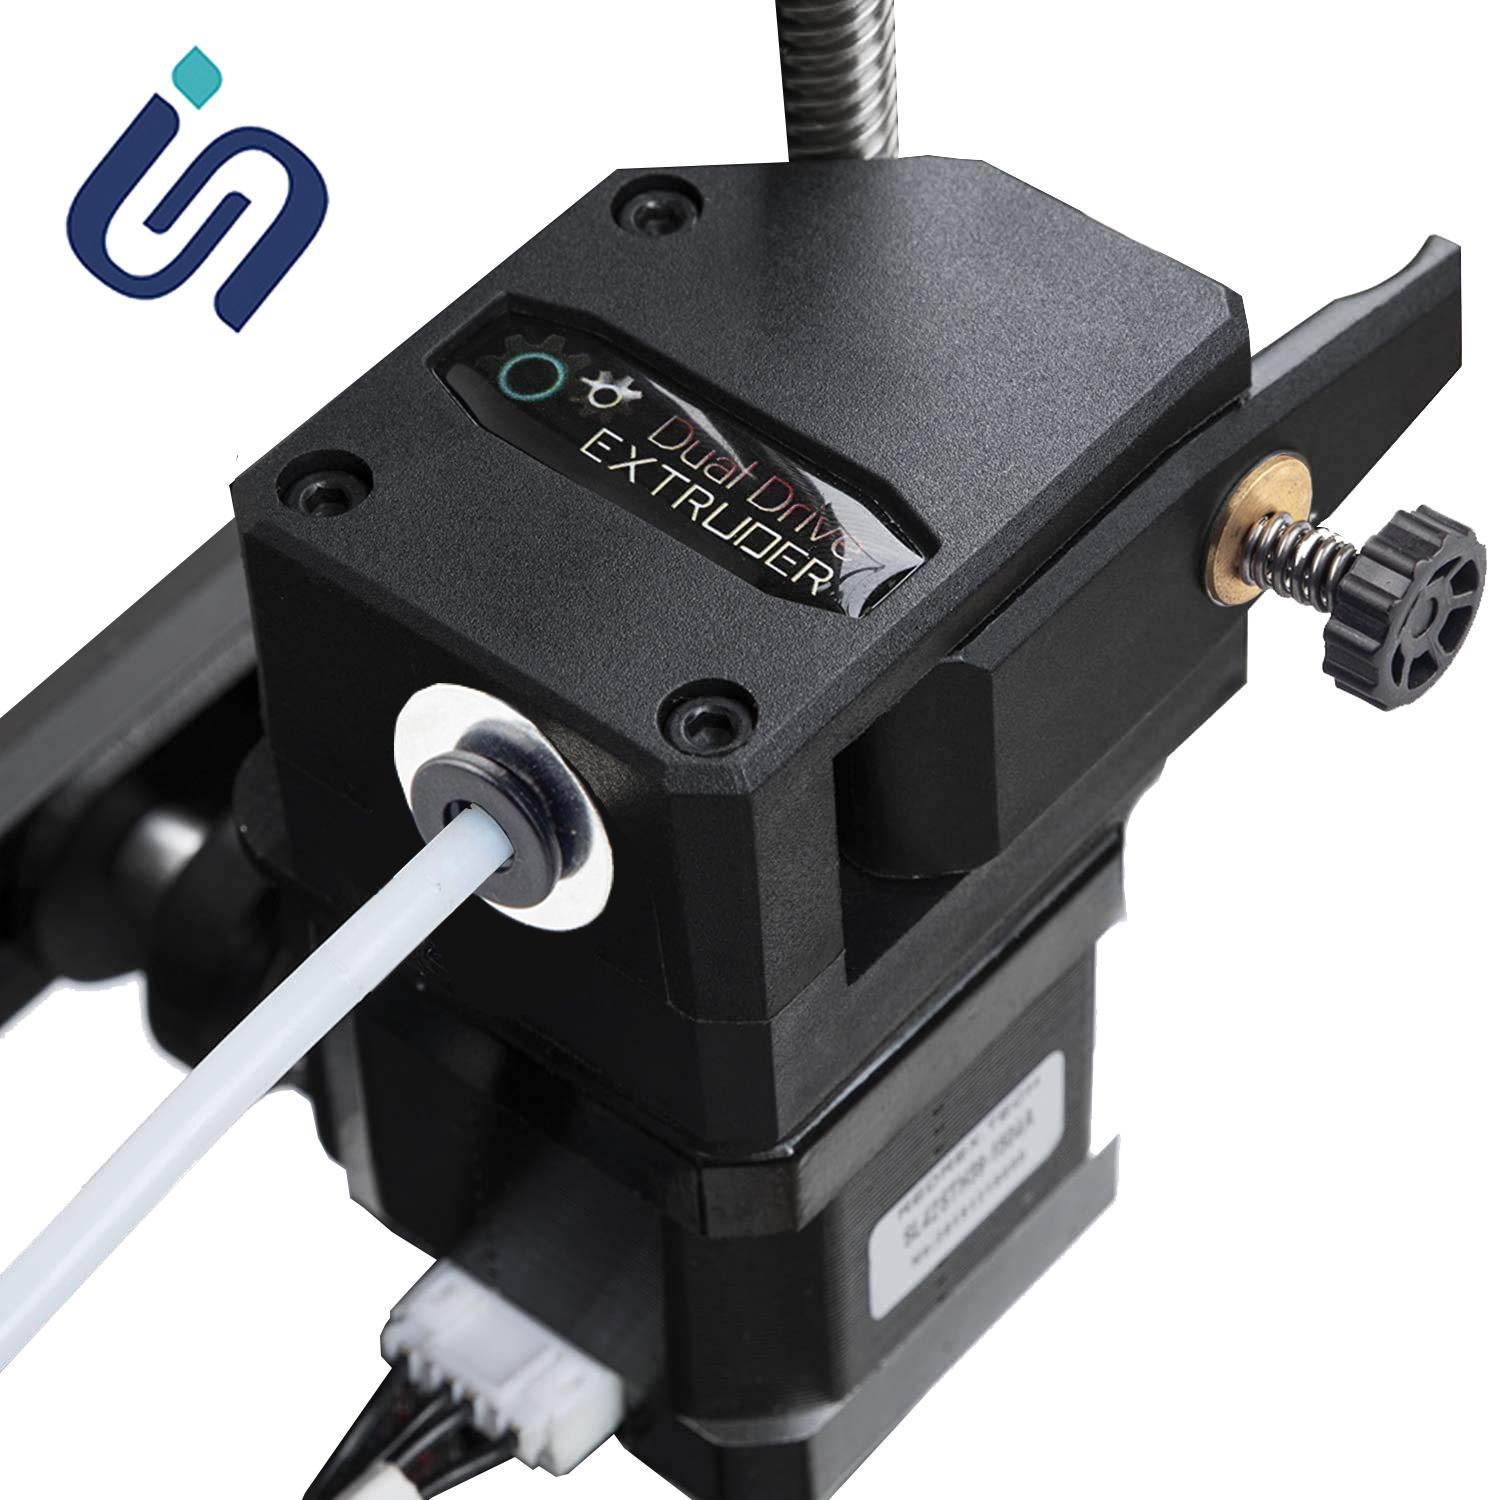 Upgrade Dual Drive Bowden Direct BMG Extruder for CR10 Ender 3 TEVO MK8 3D Printer Parts BMG Extrude